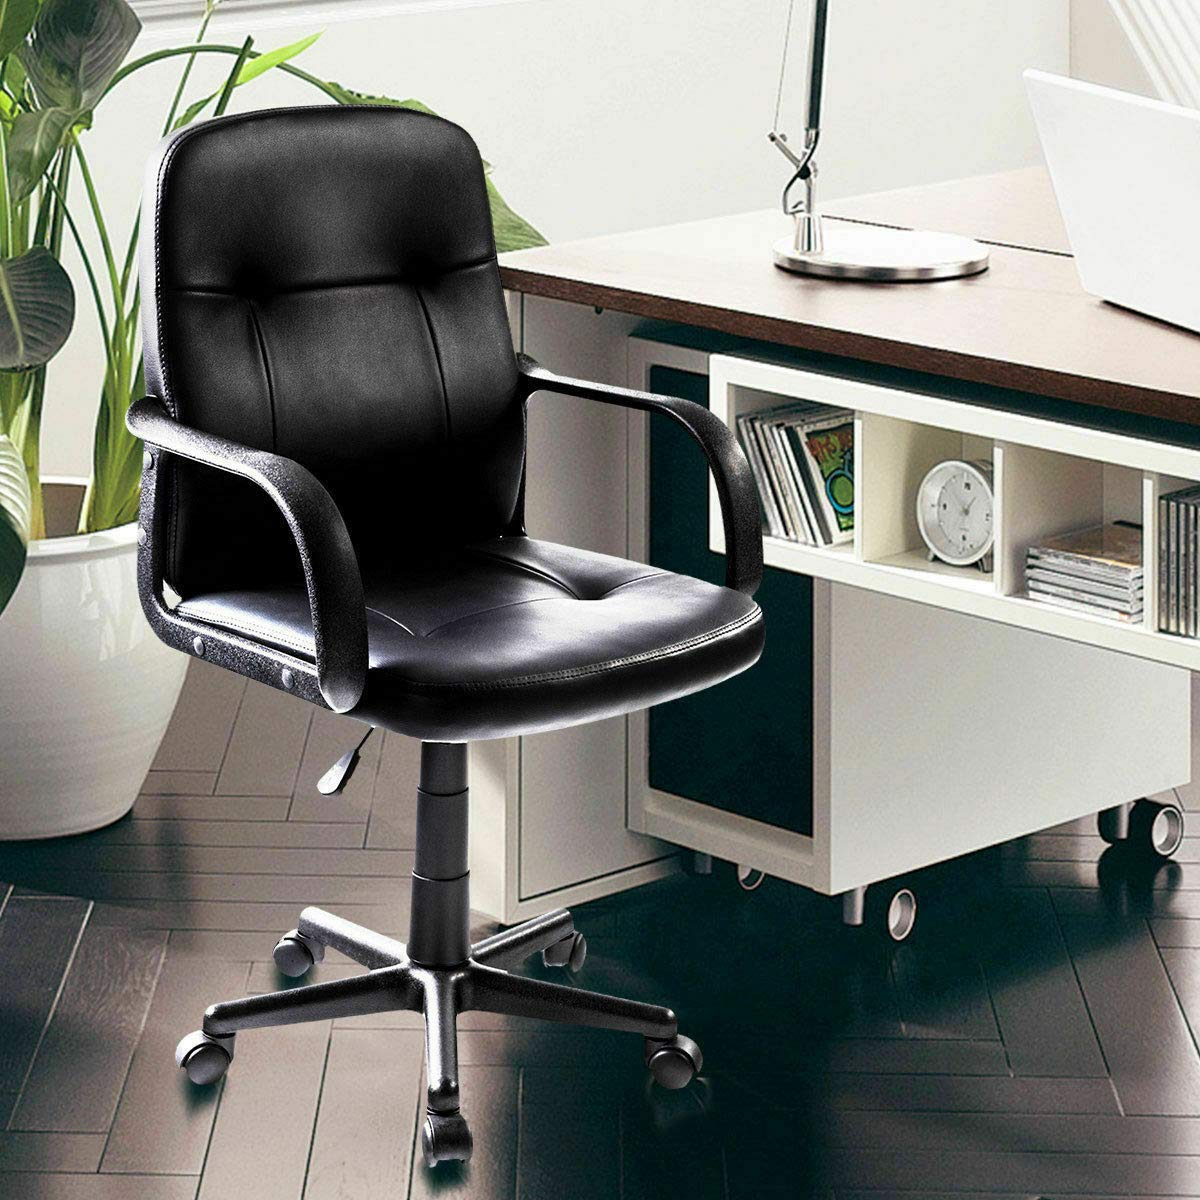 Seleq Compact Black PU Leather Desk Chair for Home Office by Seleq (Image #9)